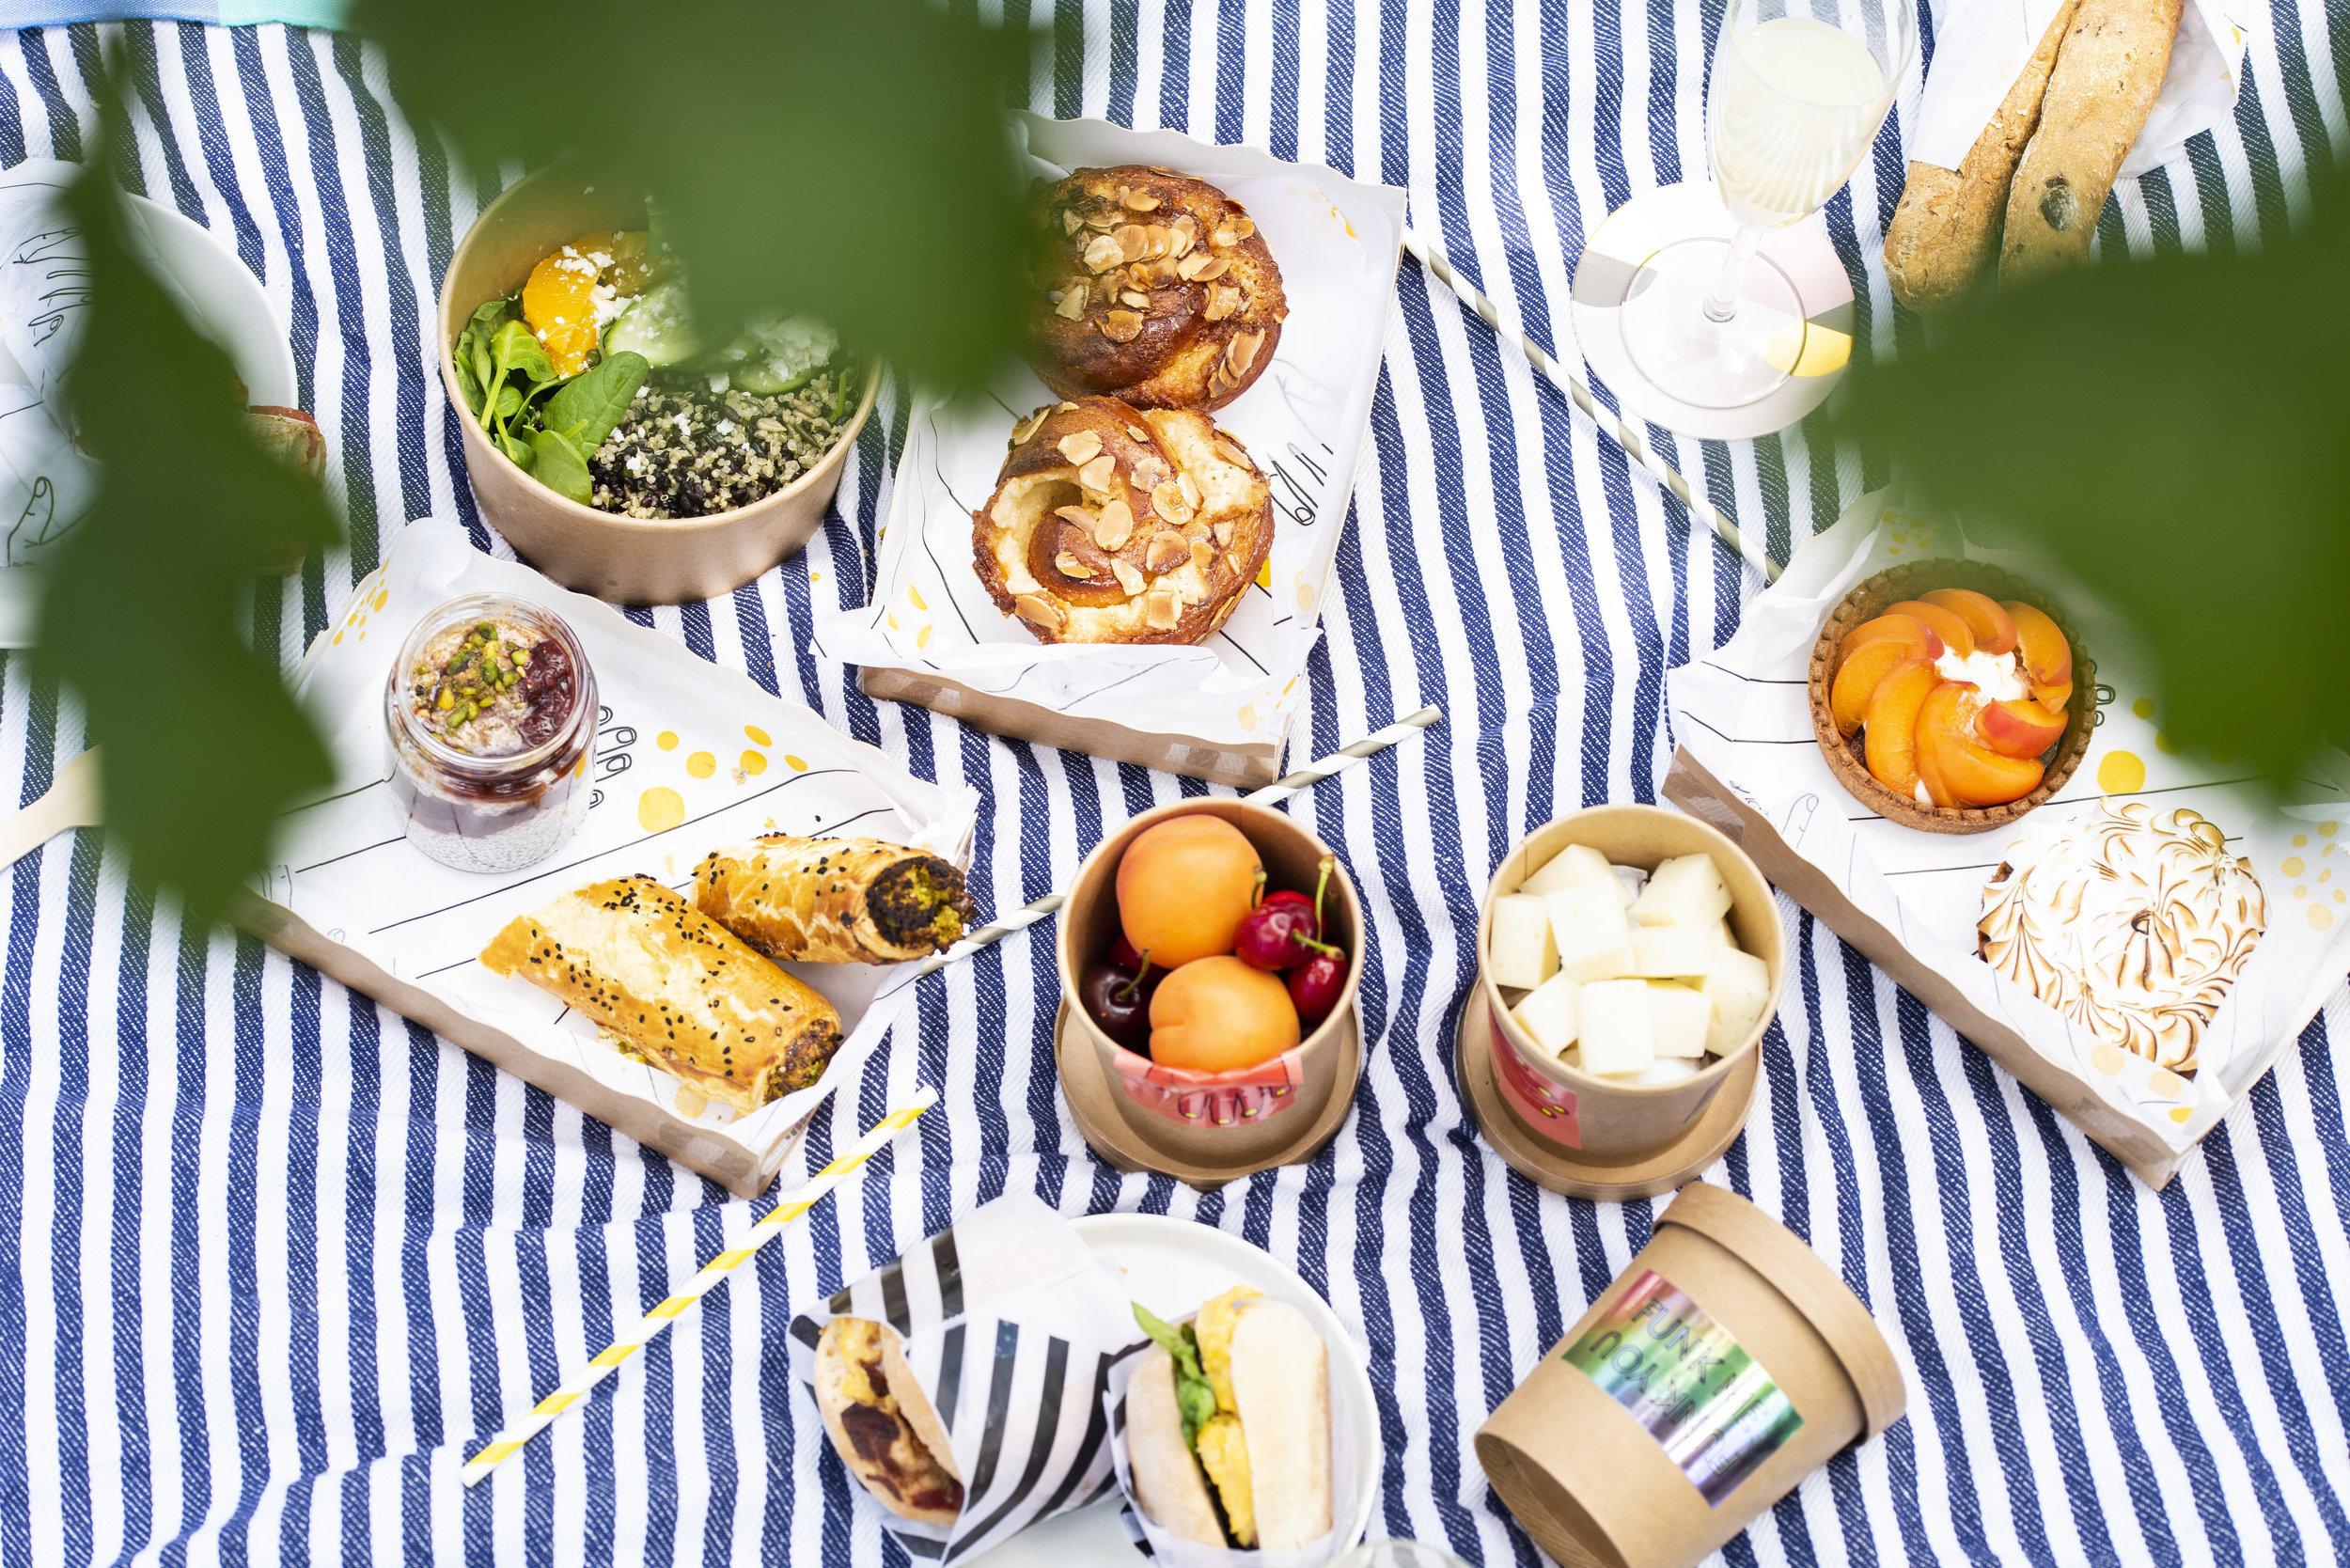 Picnic by Funky Bakers, Barcelona. Photo © Barcelona Food Experience.